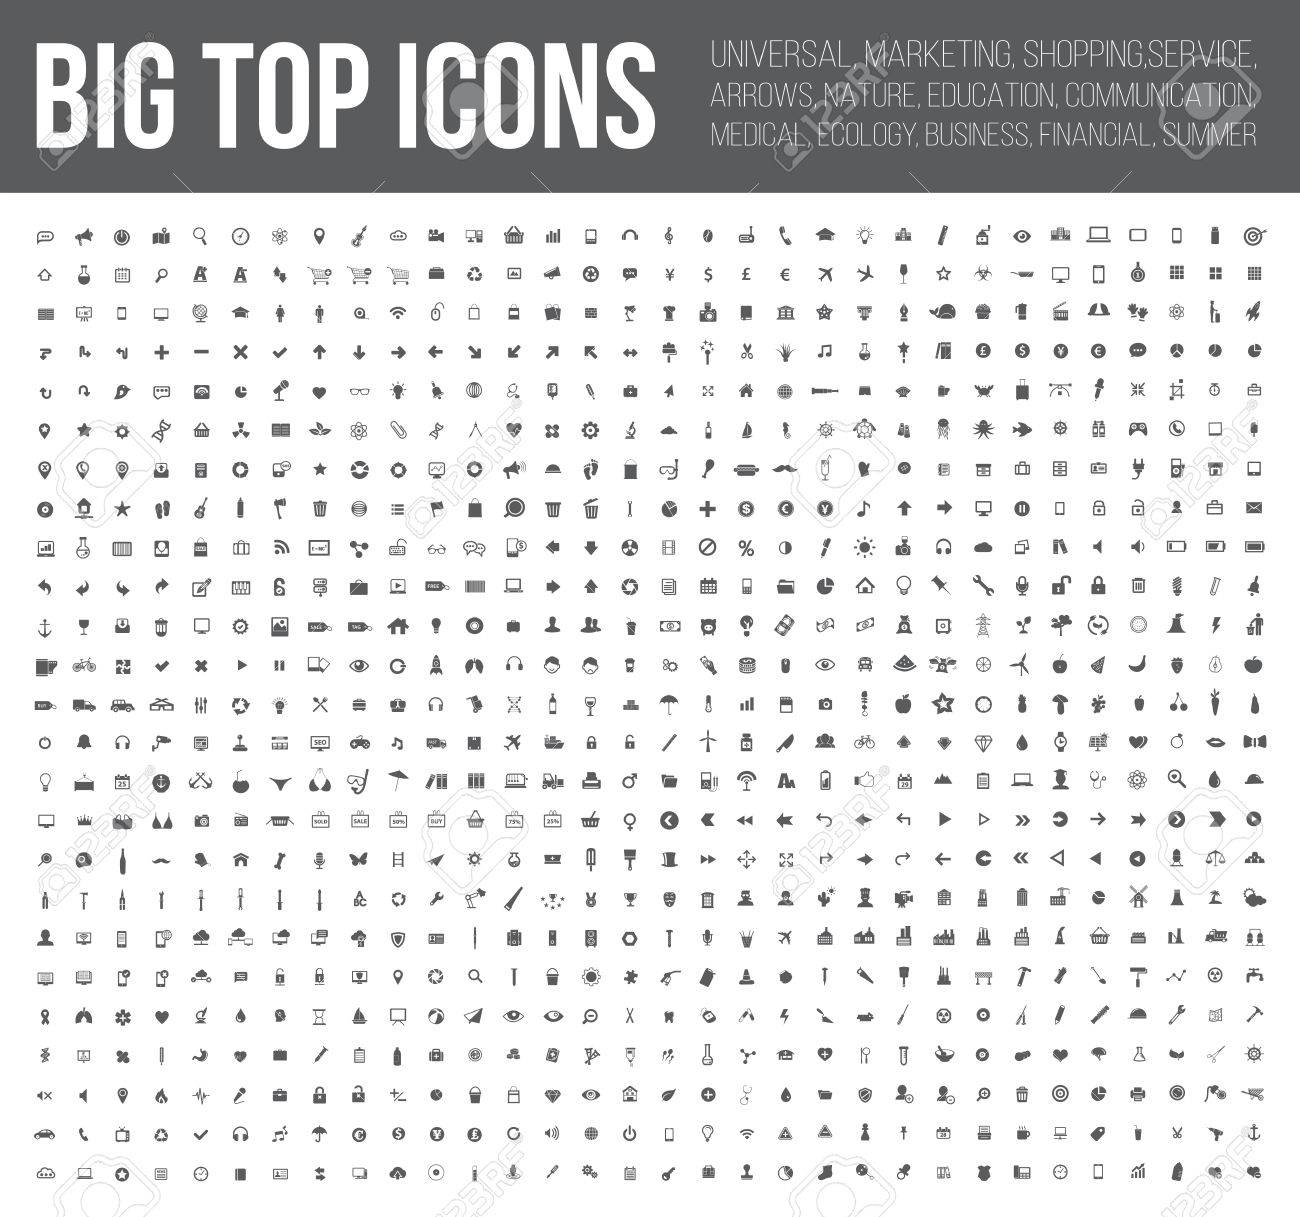 Big top icons,Business,Finance,industry,Medical, and website icon set,clean vector - 43073800